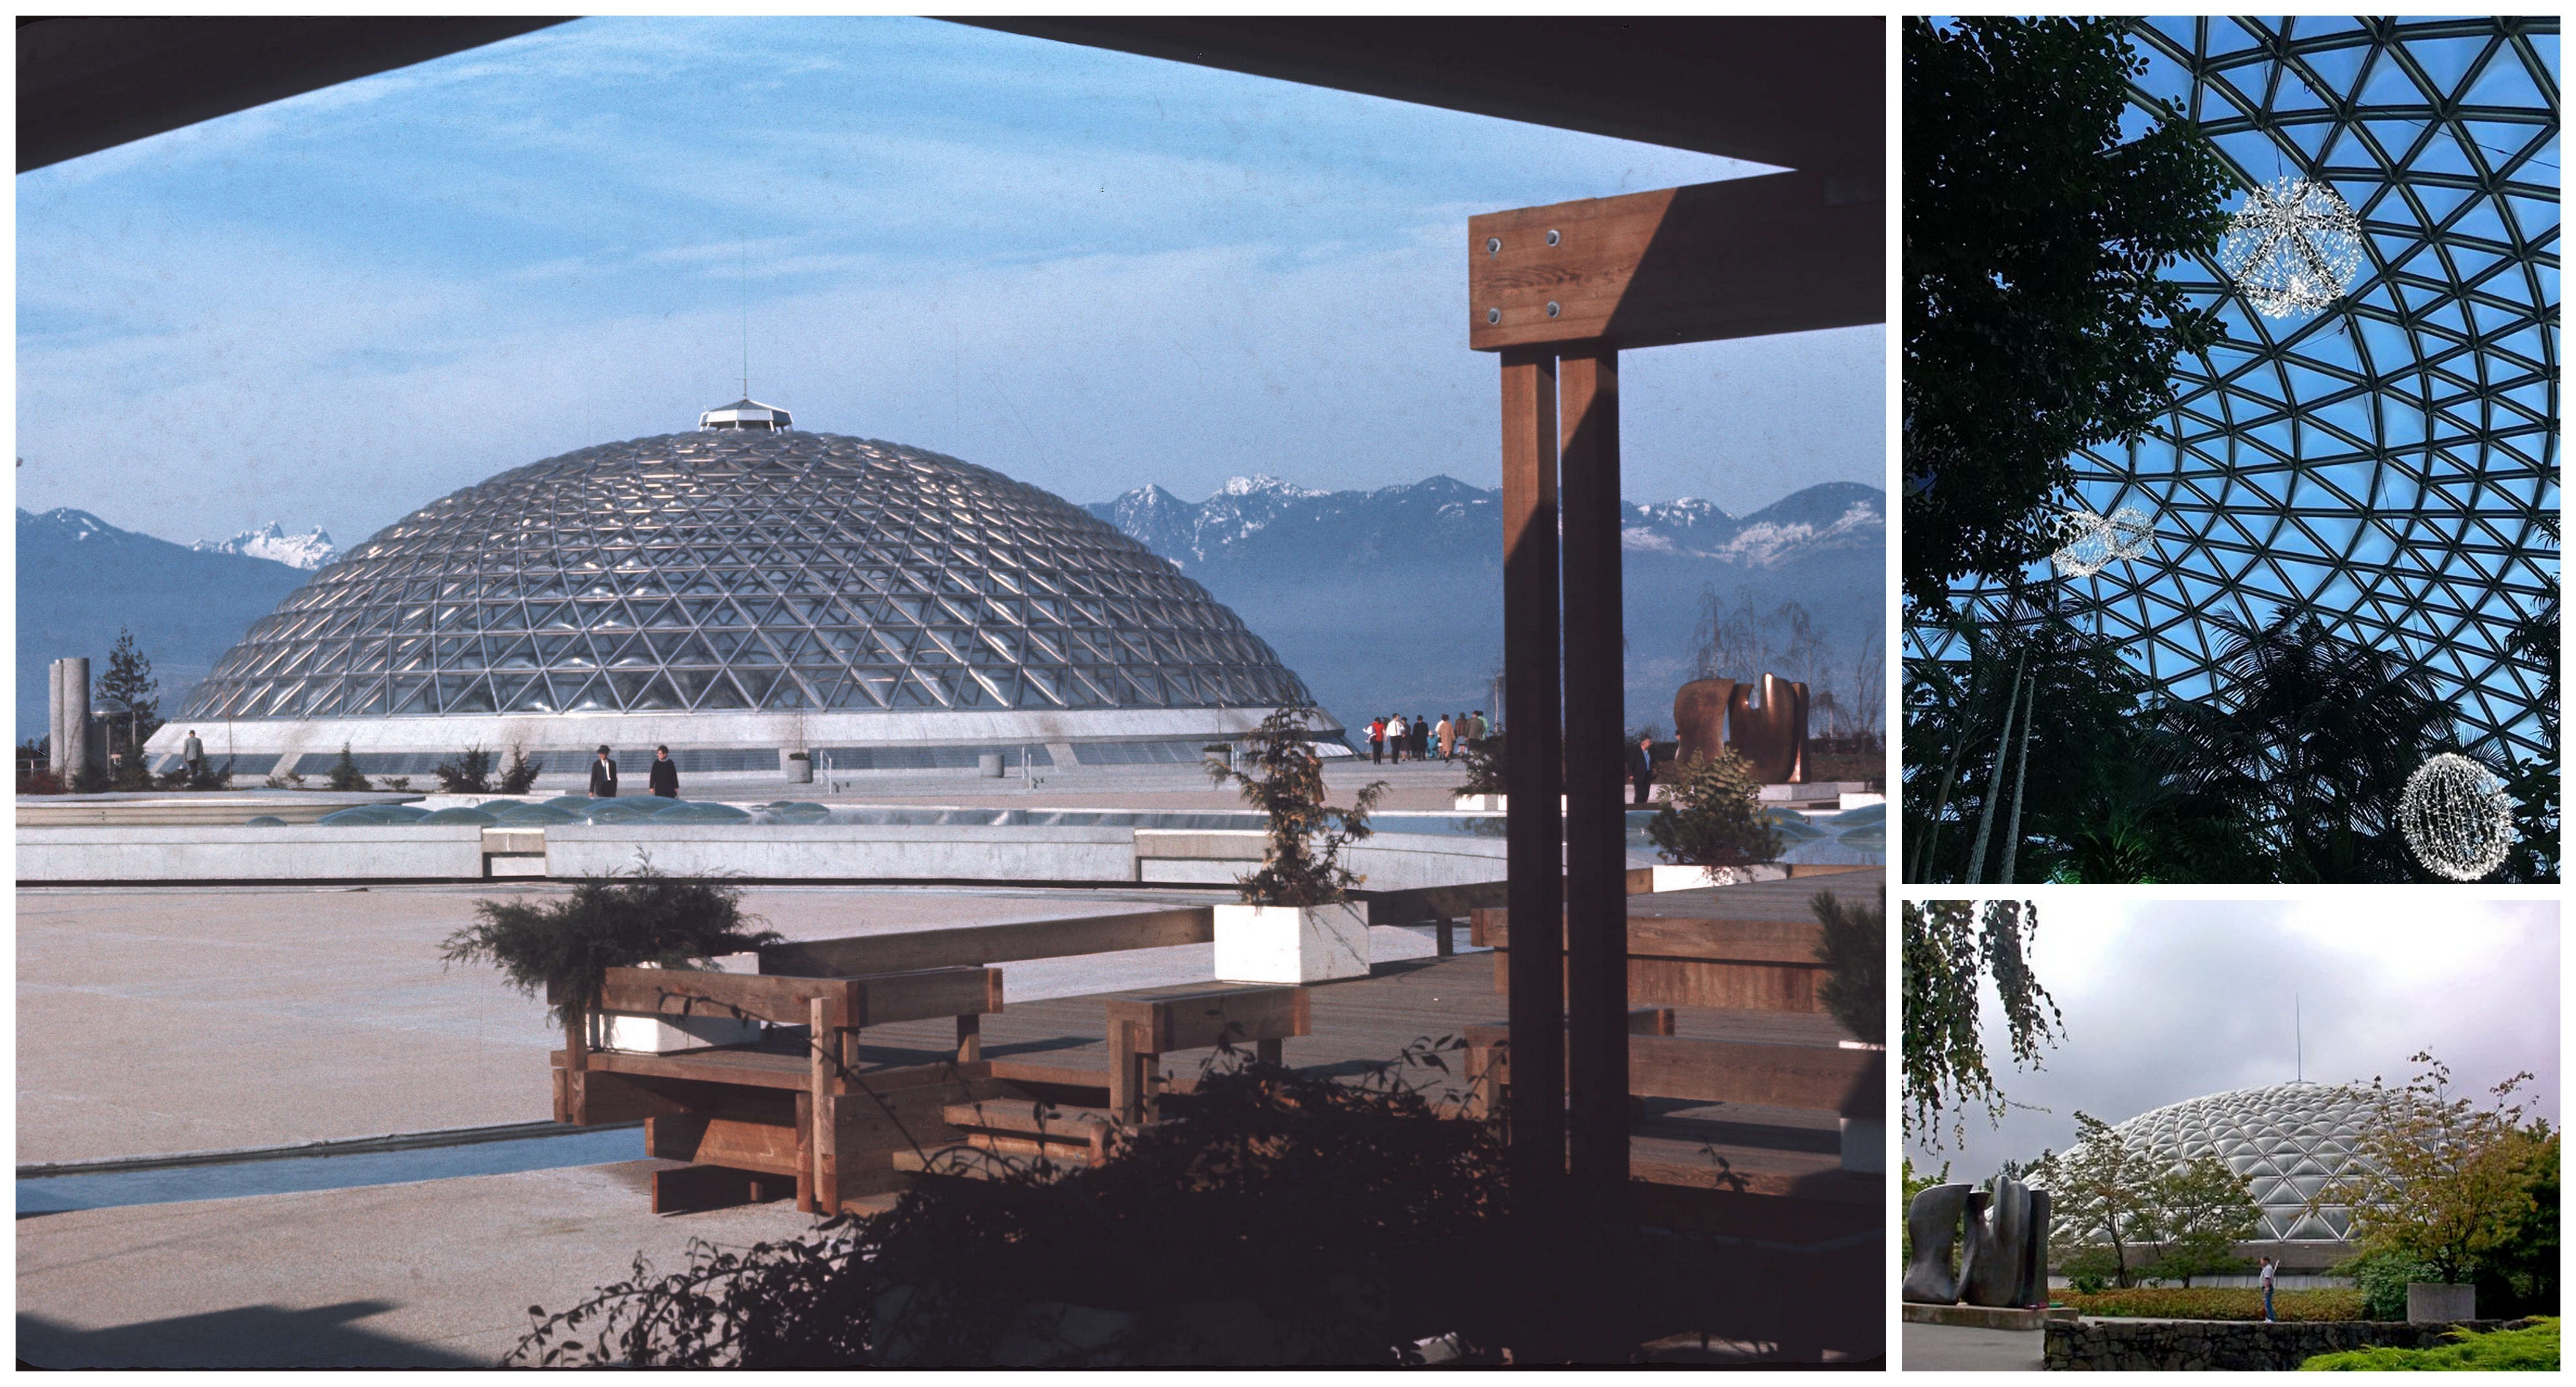 50 Geodesic Domes Around the World | Bloedel Conservatory in Vancouver